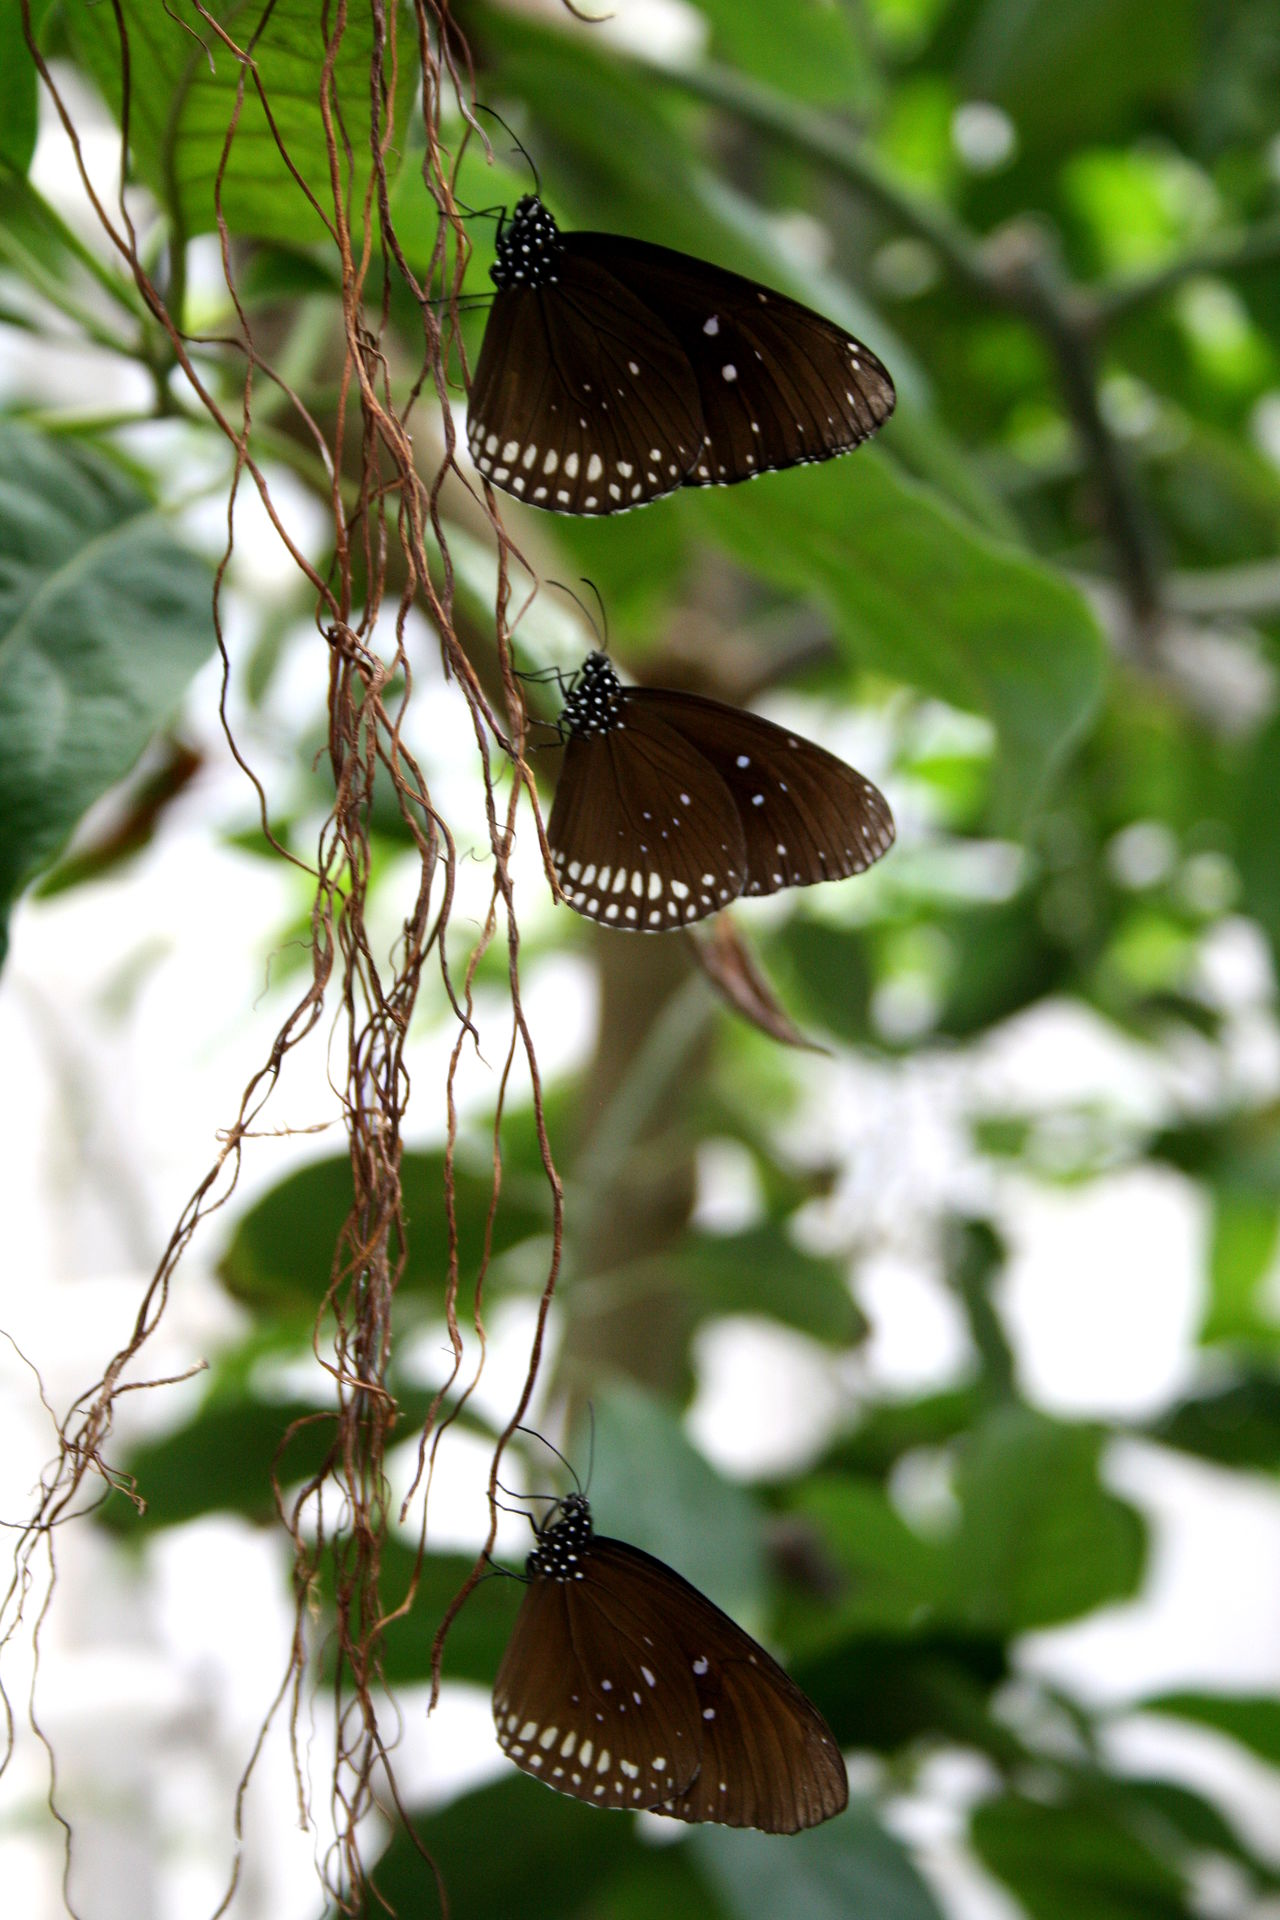 Animal Behavior Animal Themes Beauty In Nature Butterflies Butterfly - Insect Canon Check This Out Day EyeEm Nature Lover Focus On Foreground Fragility Hanging Around Hello World Insect Luisenpark Mannheim Nature No People Plant Taking Photos